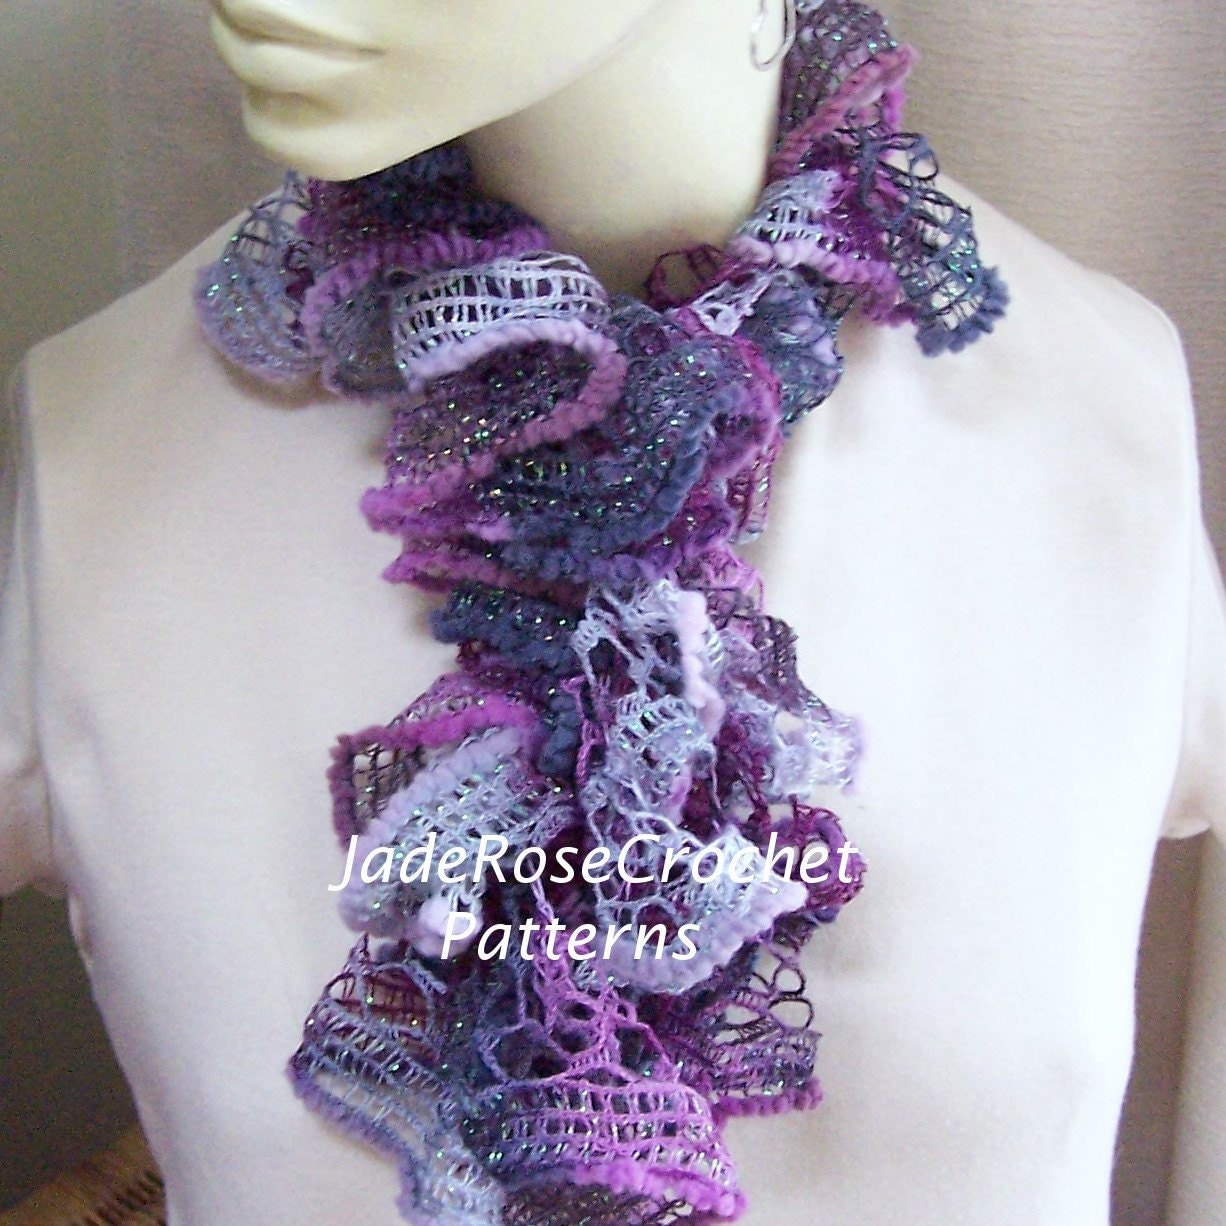 Crochet Patterns Ruffle Scarf : Crochet Scarf Pattern Ruffled Scarf Pattern Long and Frilly Etsy